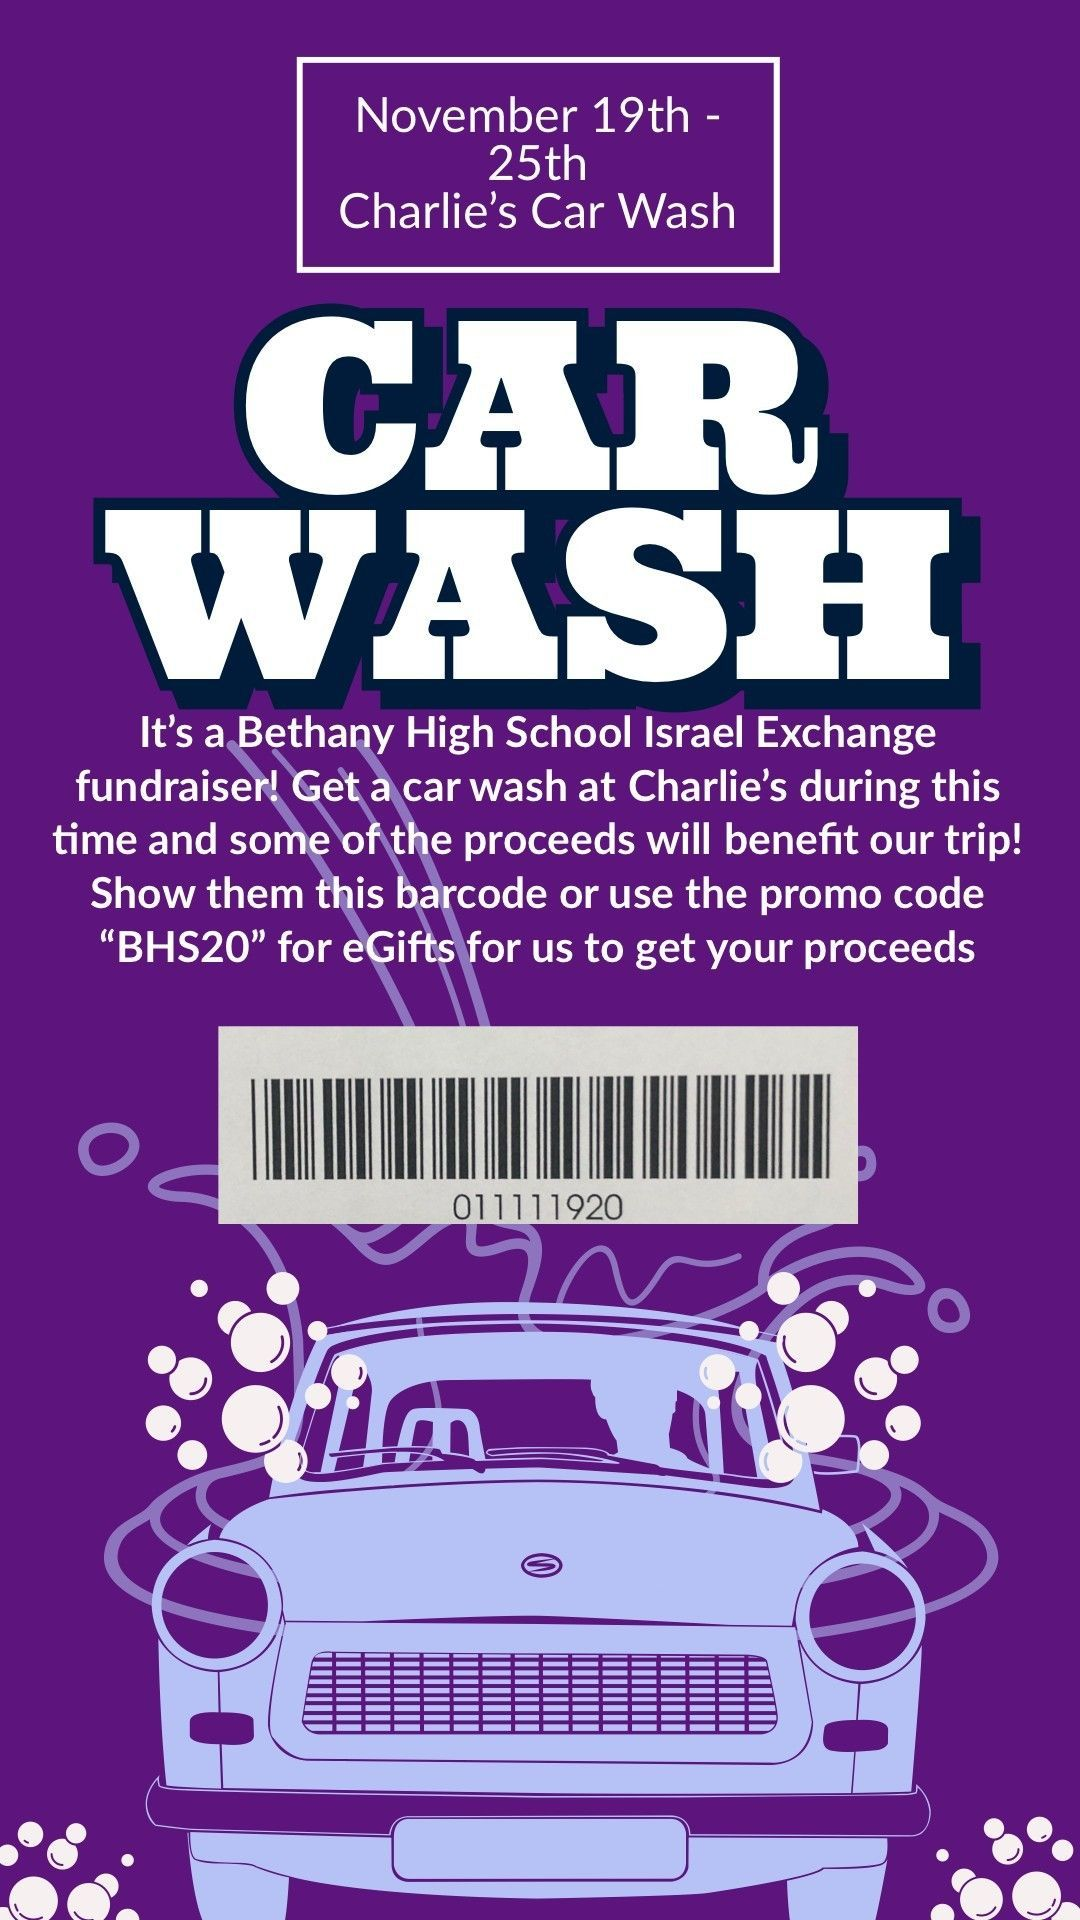 Bethany Israel Exchange Car Wash Fundraiser - 11/19 to 11/25